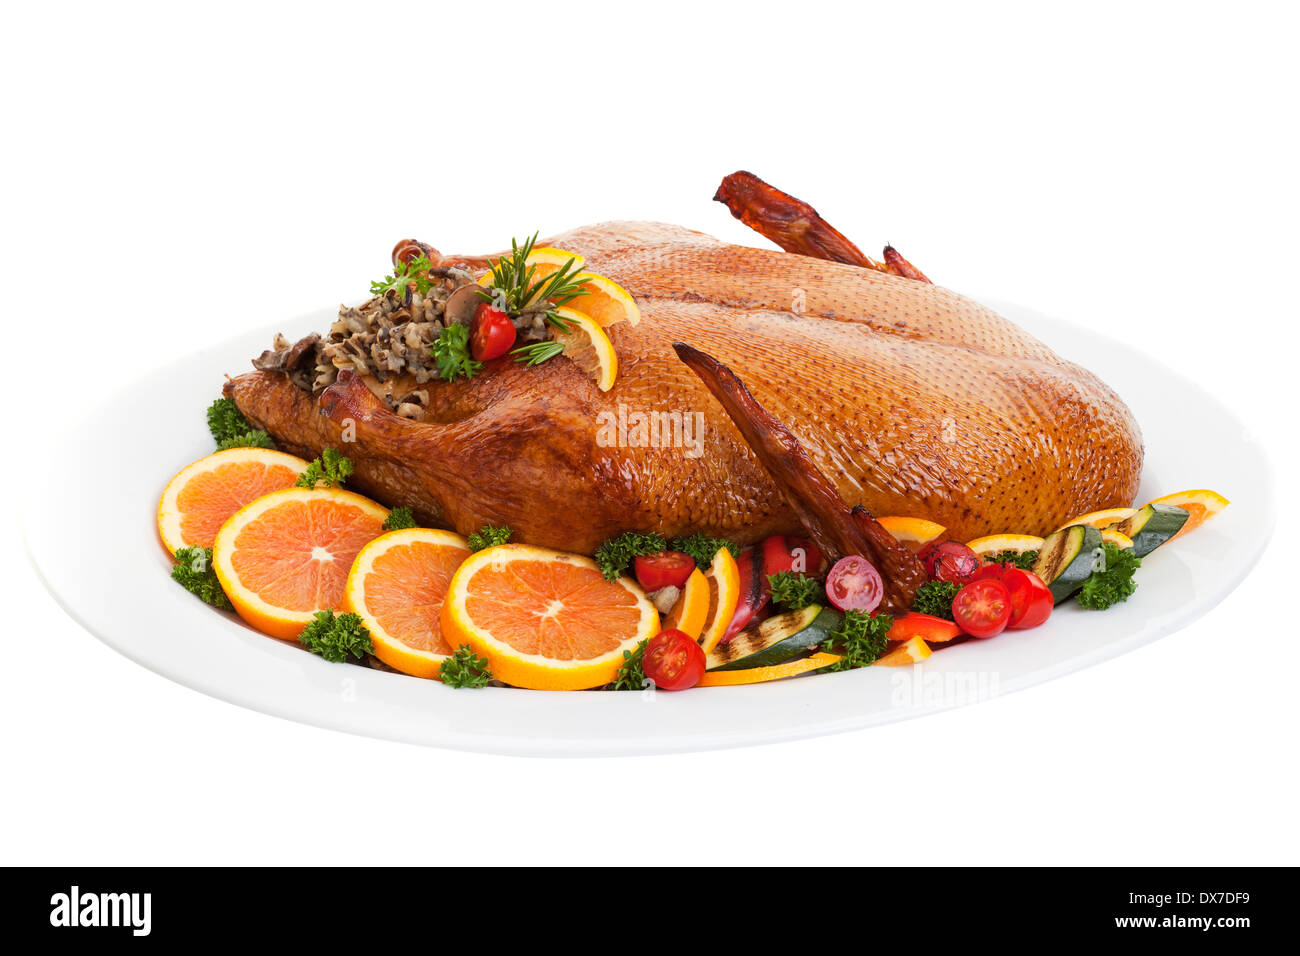 Roasted duck on a plate with salads oranges and vegetables,on a white background. - Stock Image